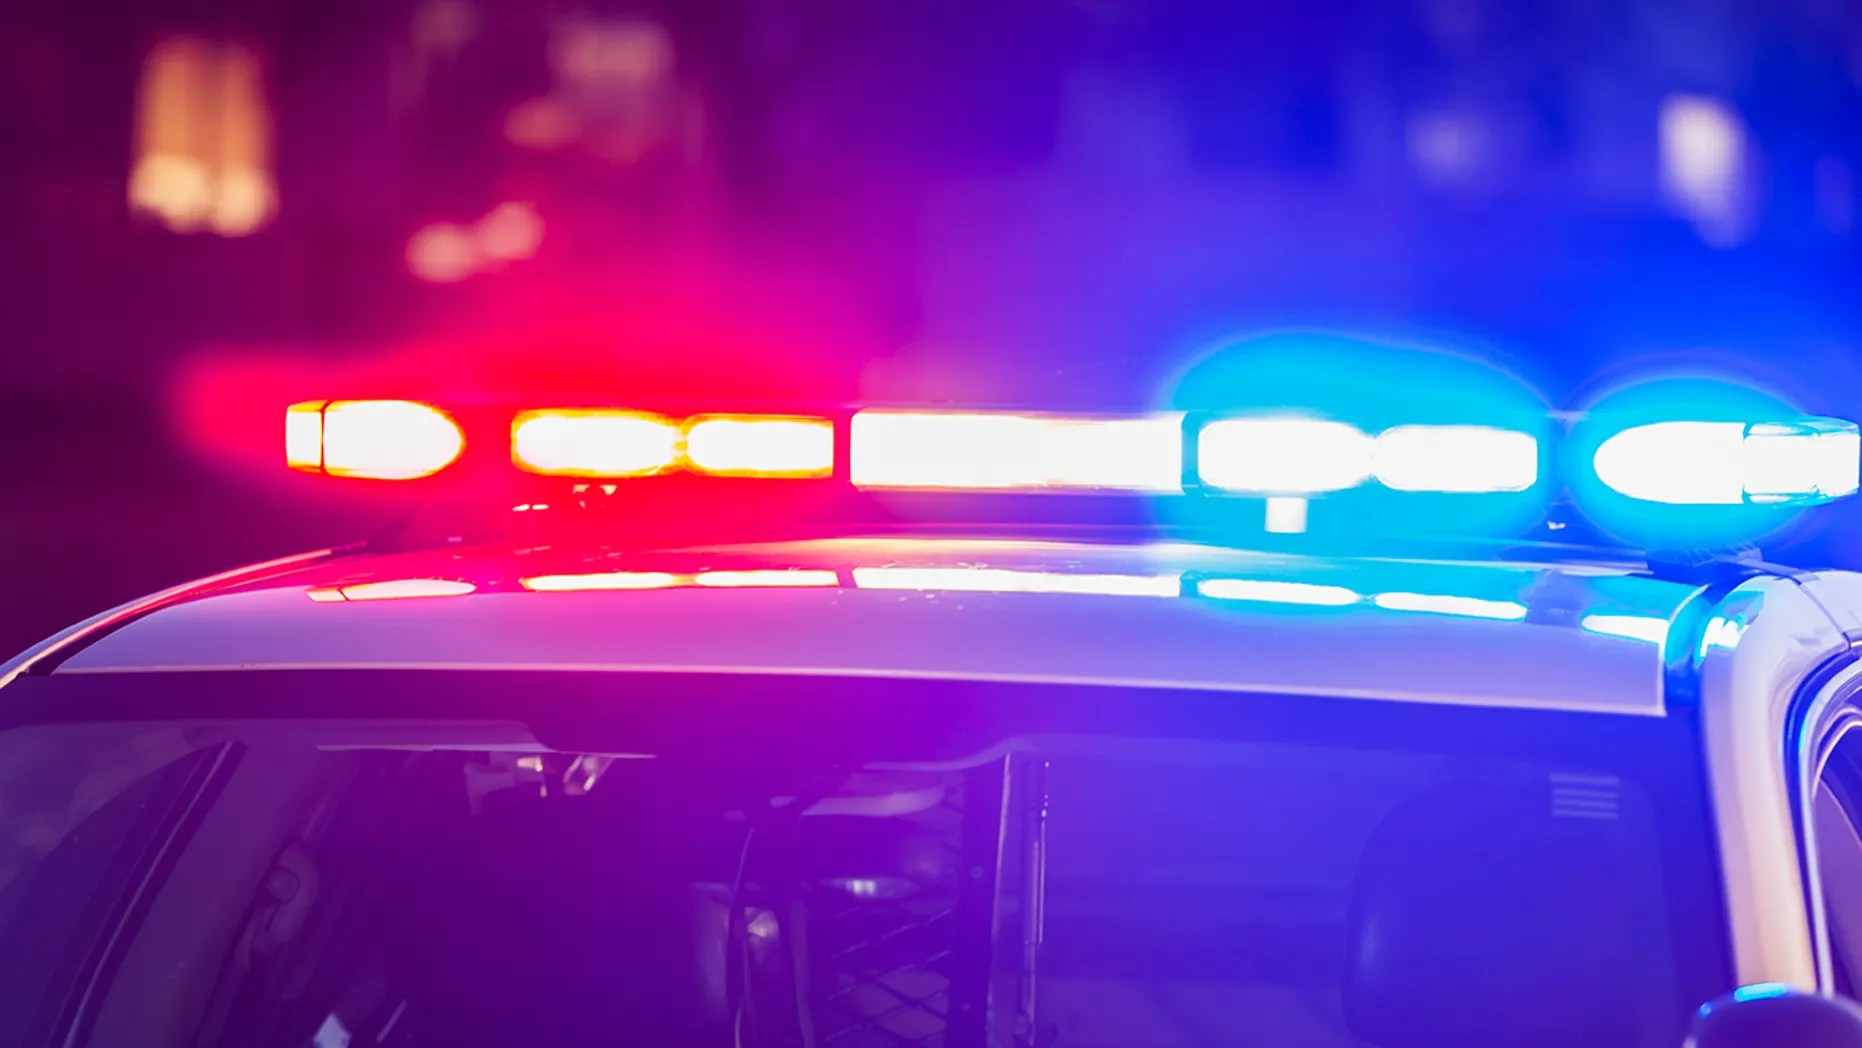 A police officer with the city of Davis, Calif., was in serious condition late Thursday after she was shot while responding to a triple-car accident, authorities say. The suspect is being sought.